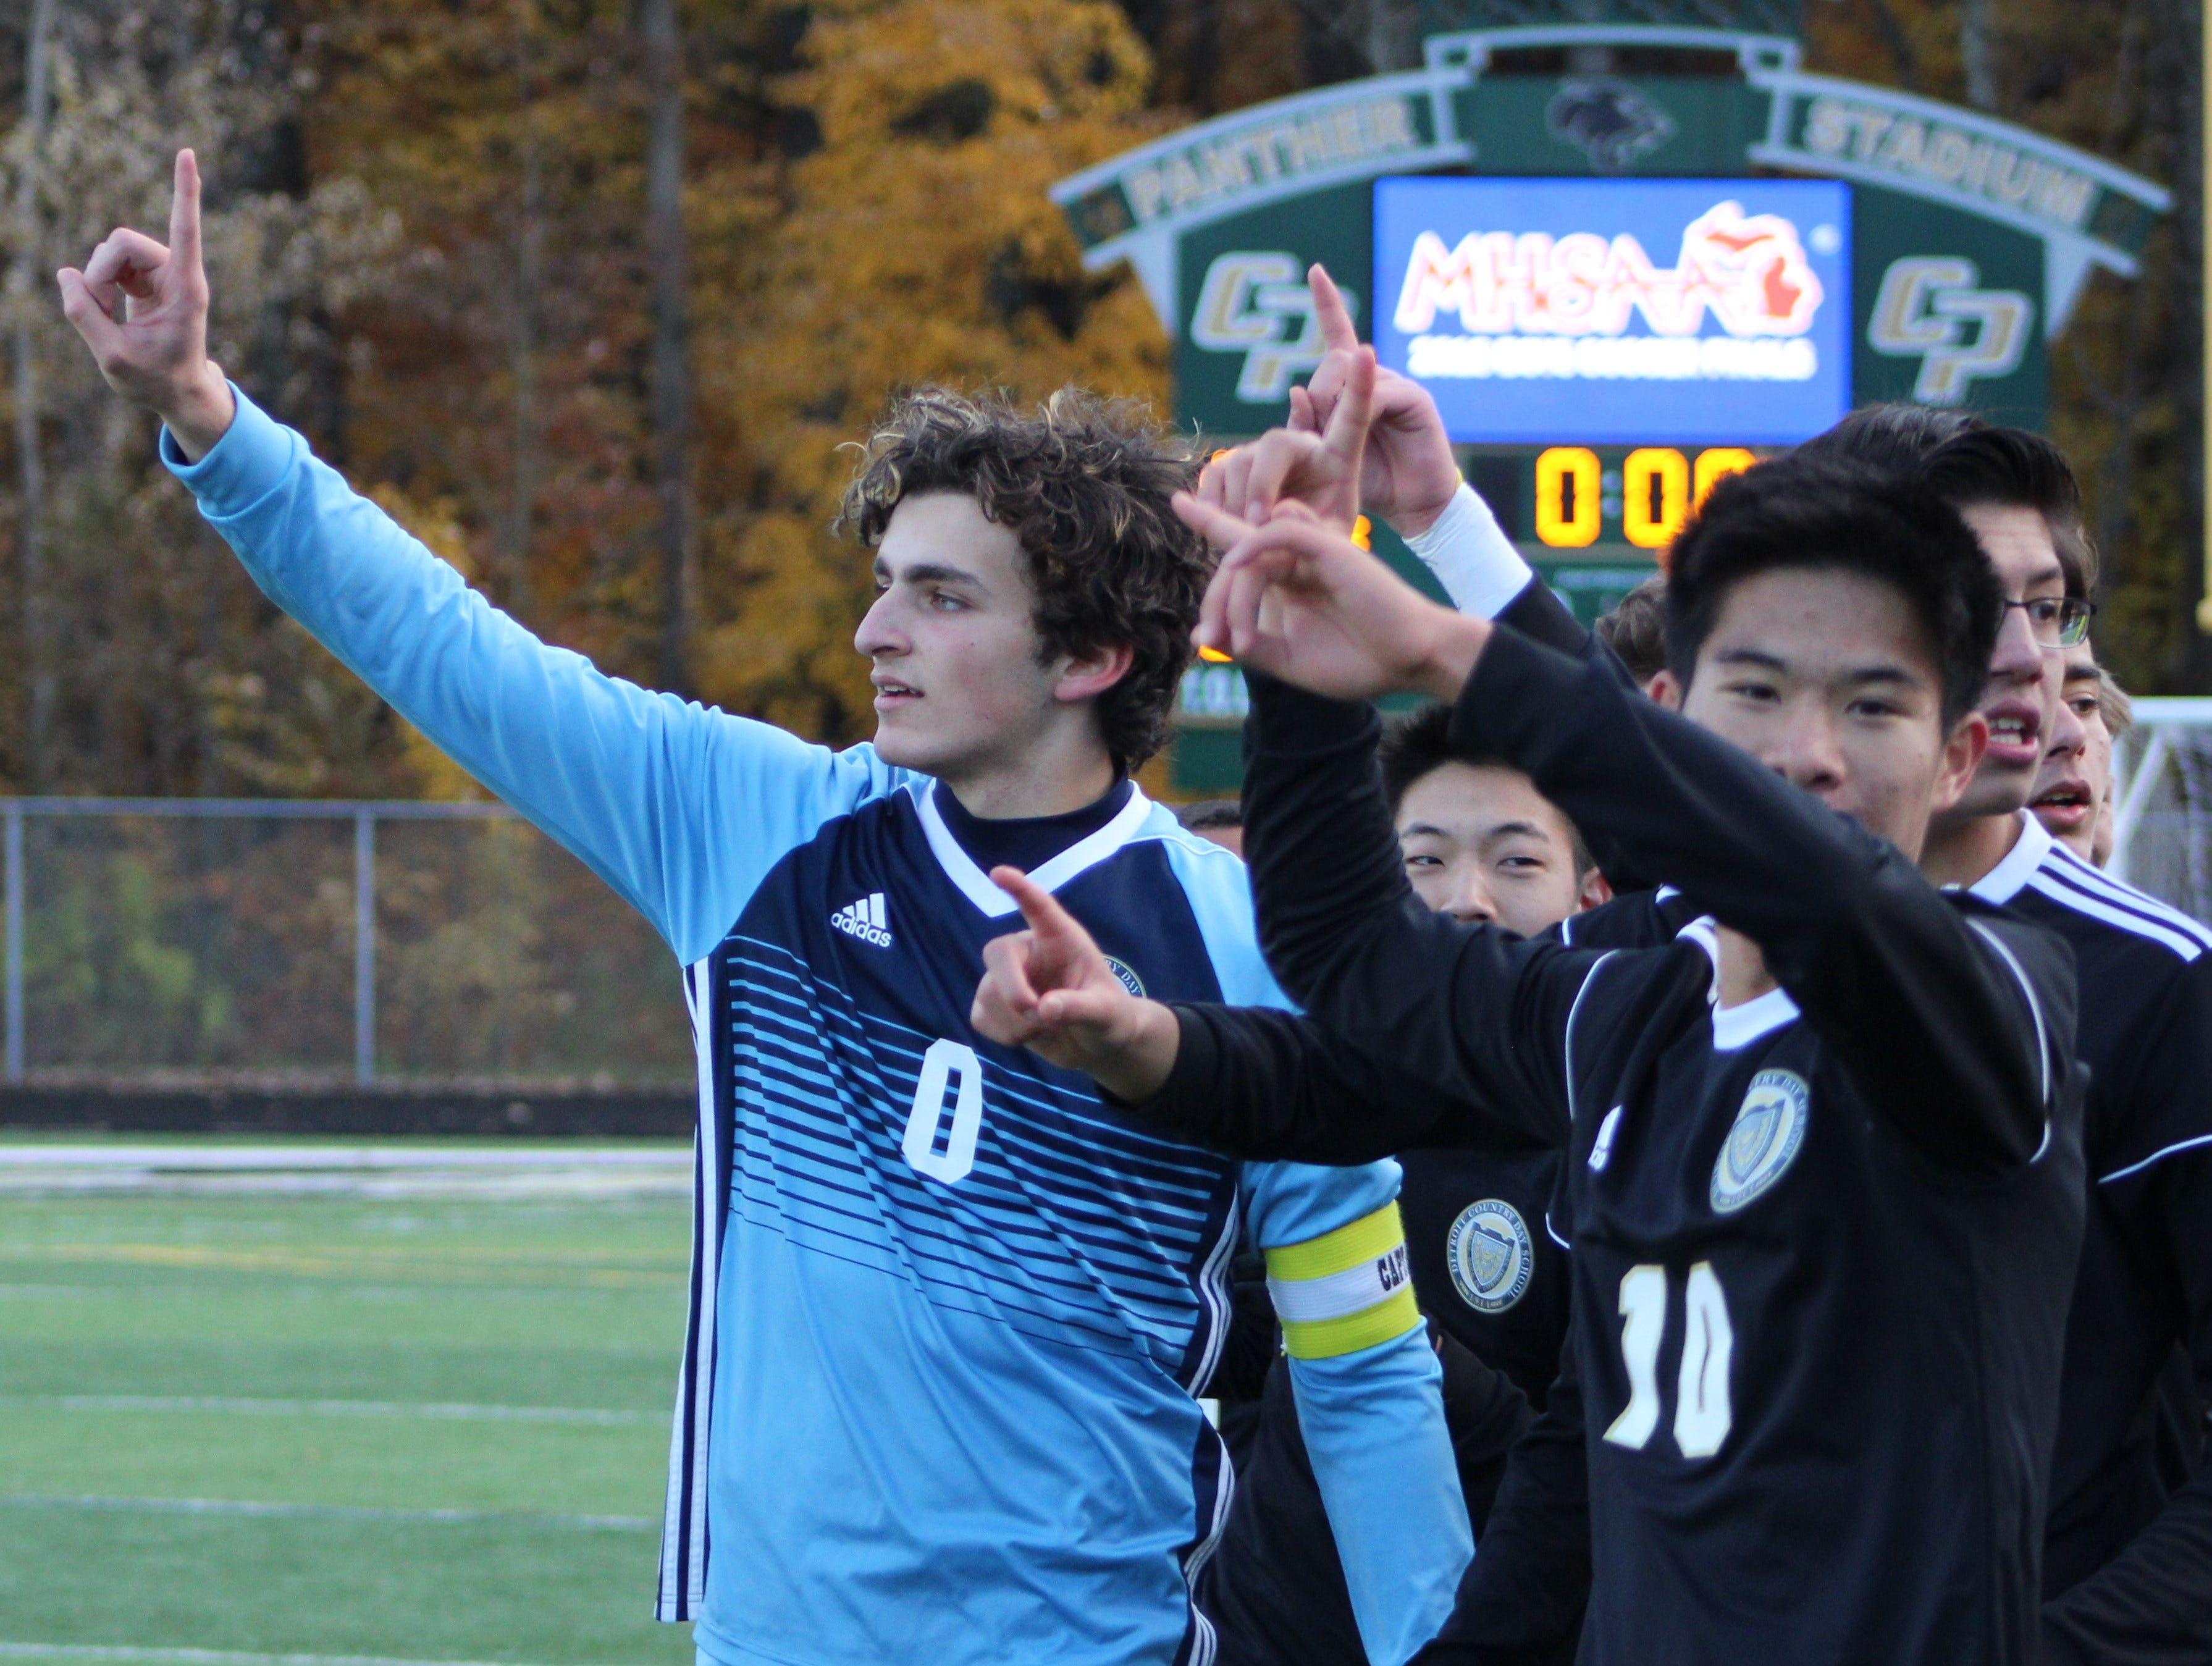 Country Day soars to D-2 state soccer crown behind huge effort from goalie Dougherty